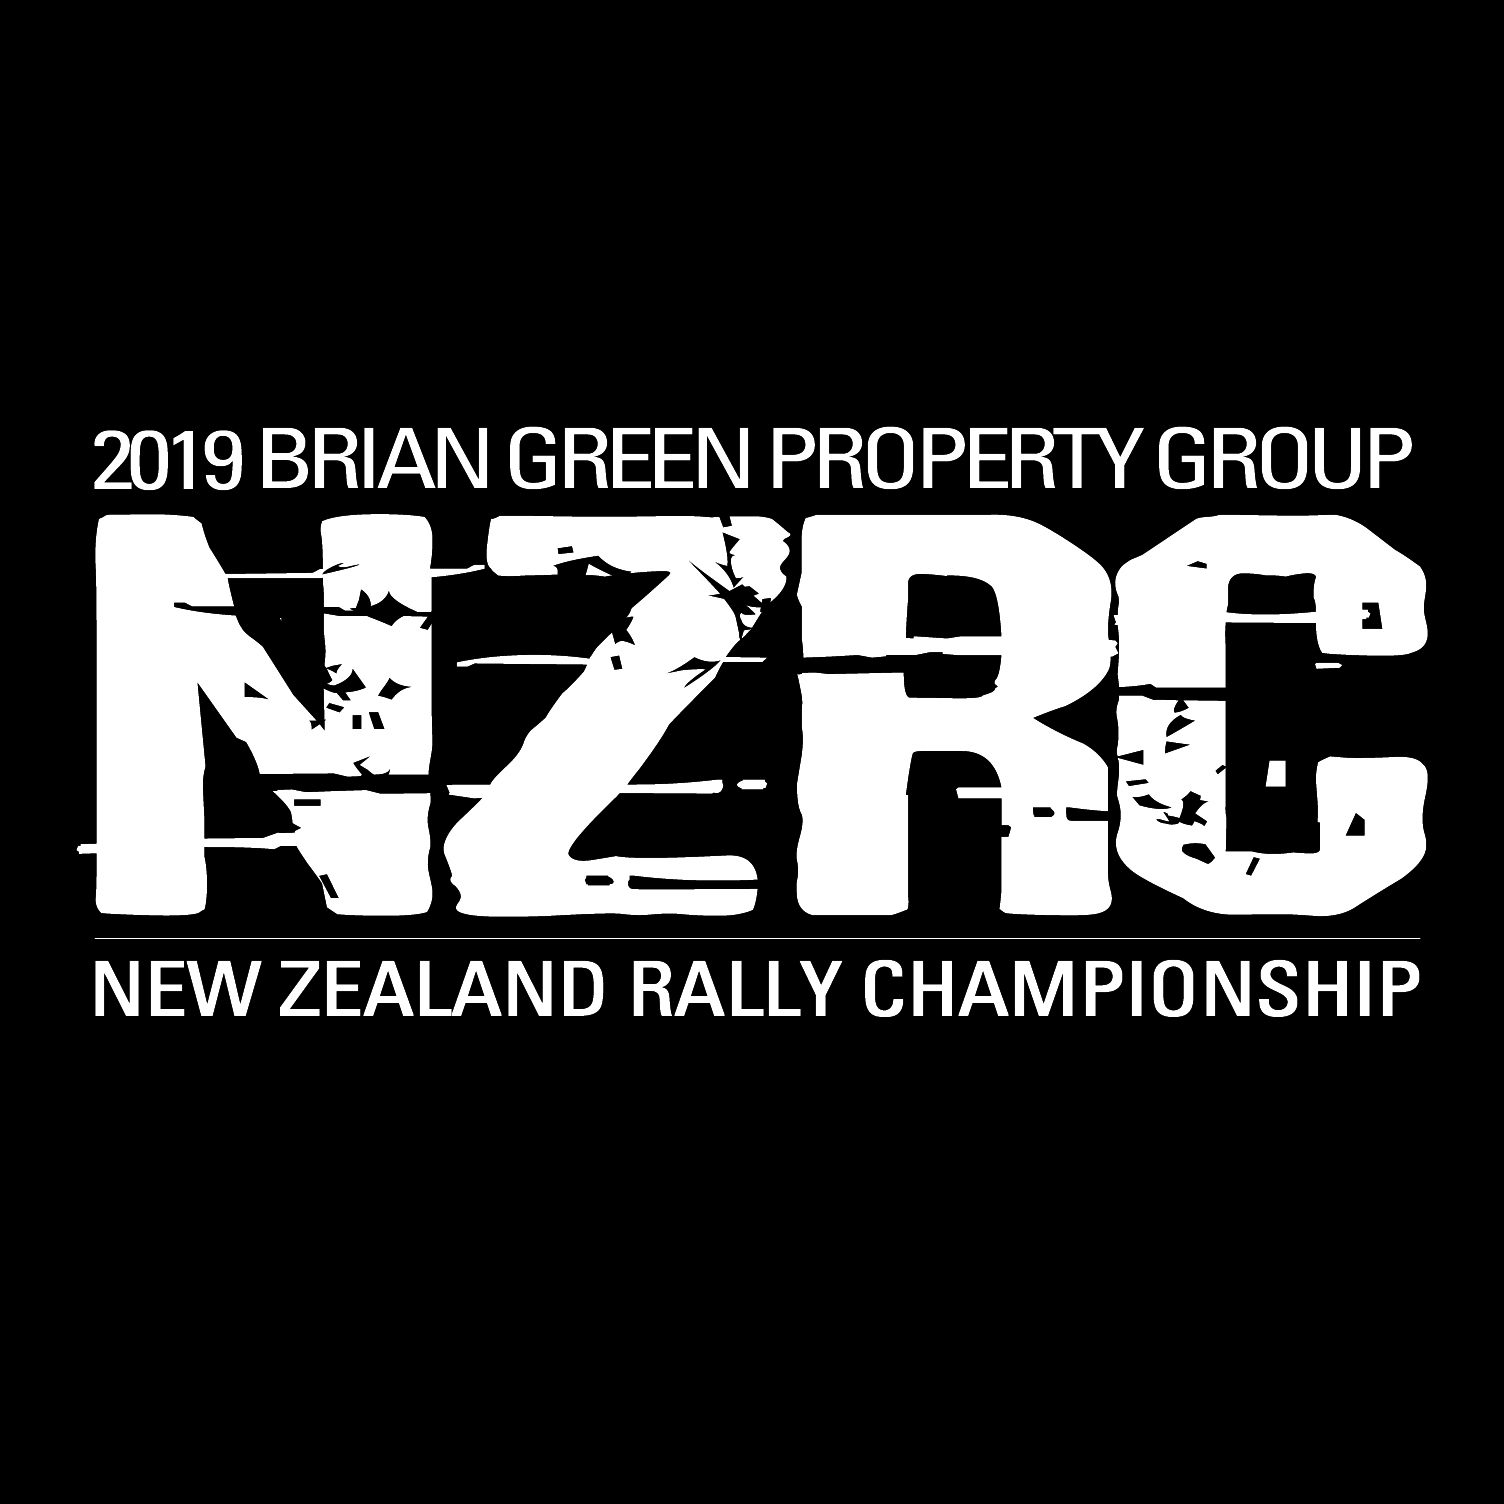 Southern challenge awaits Championship field | :: Brian Green Property Group New Zealand Rally Championship ::